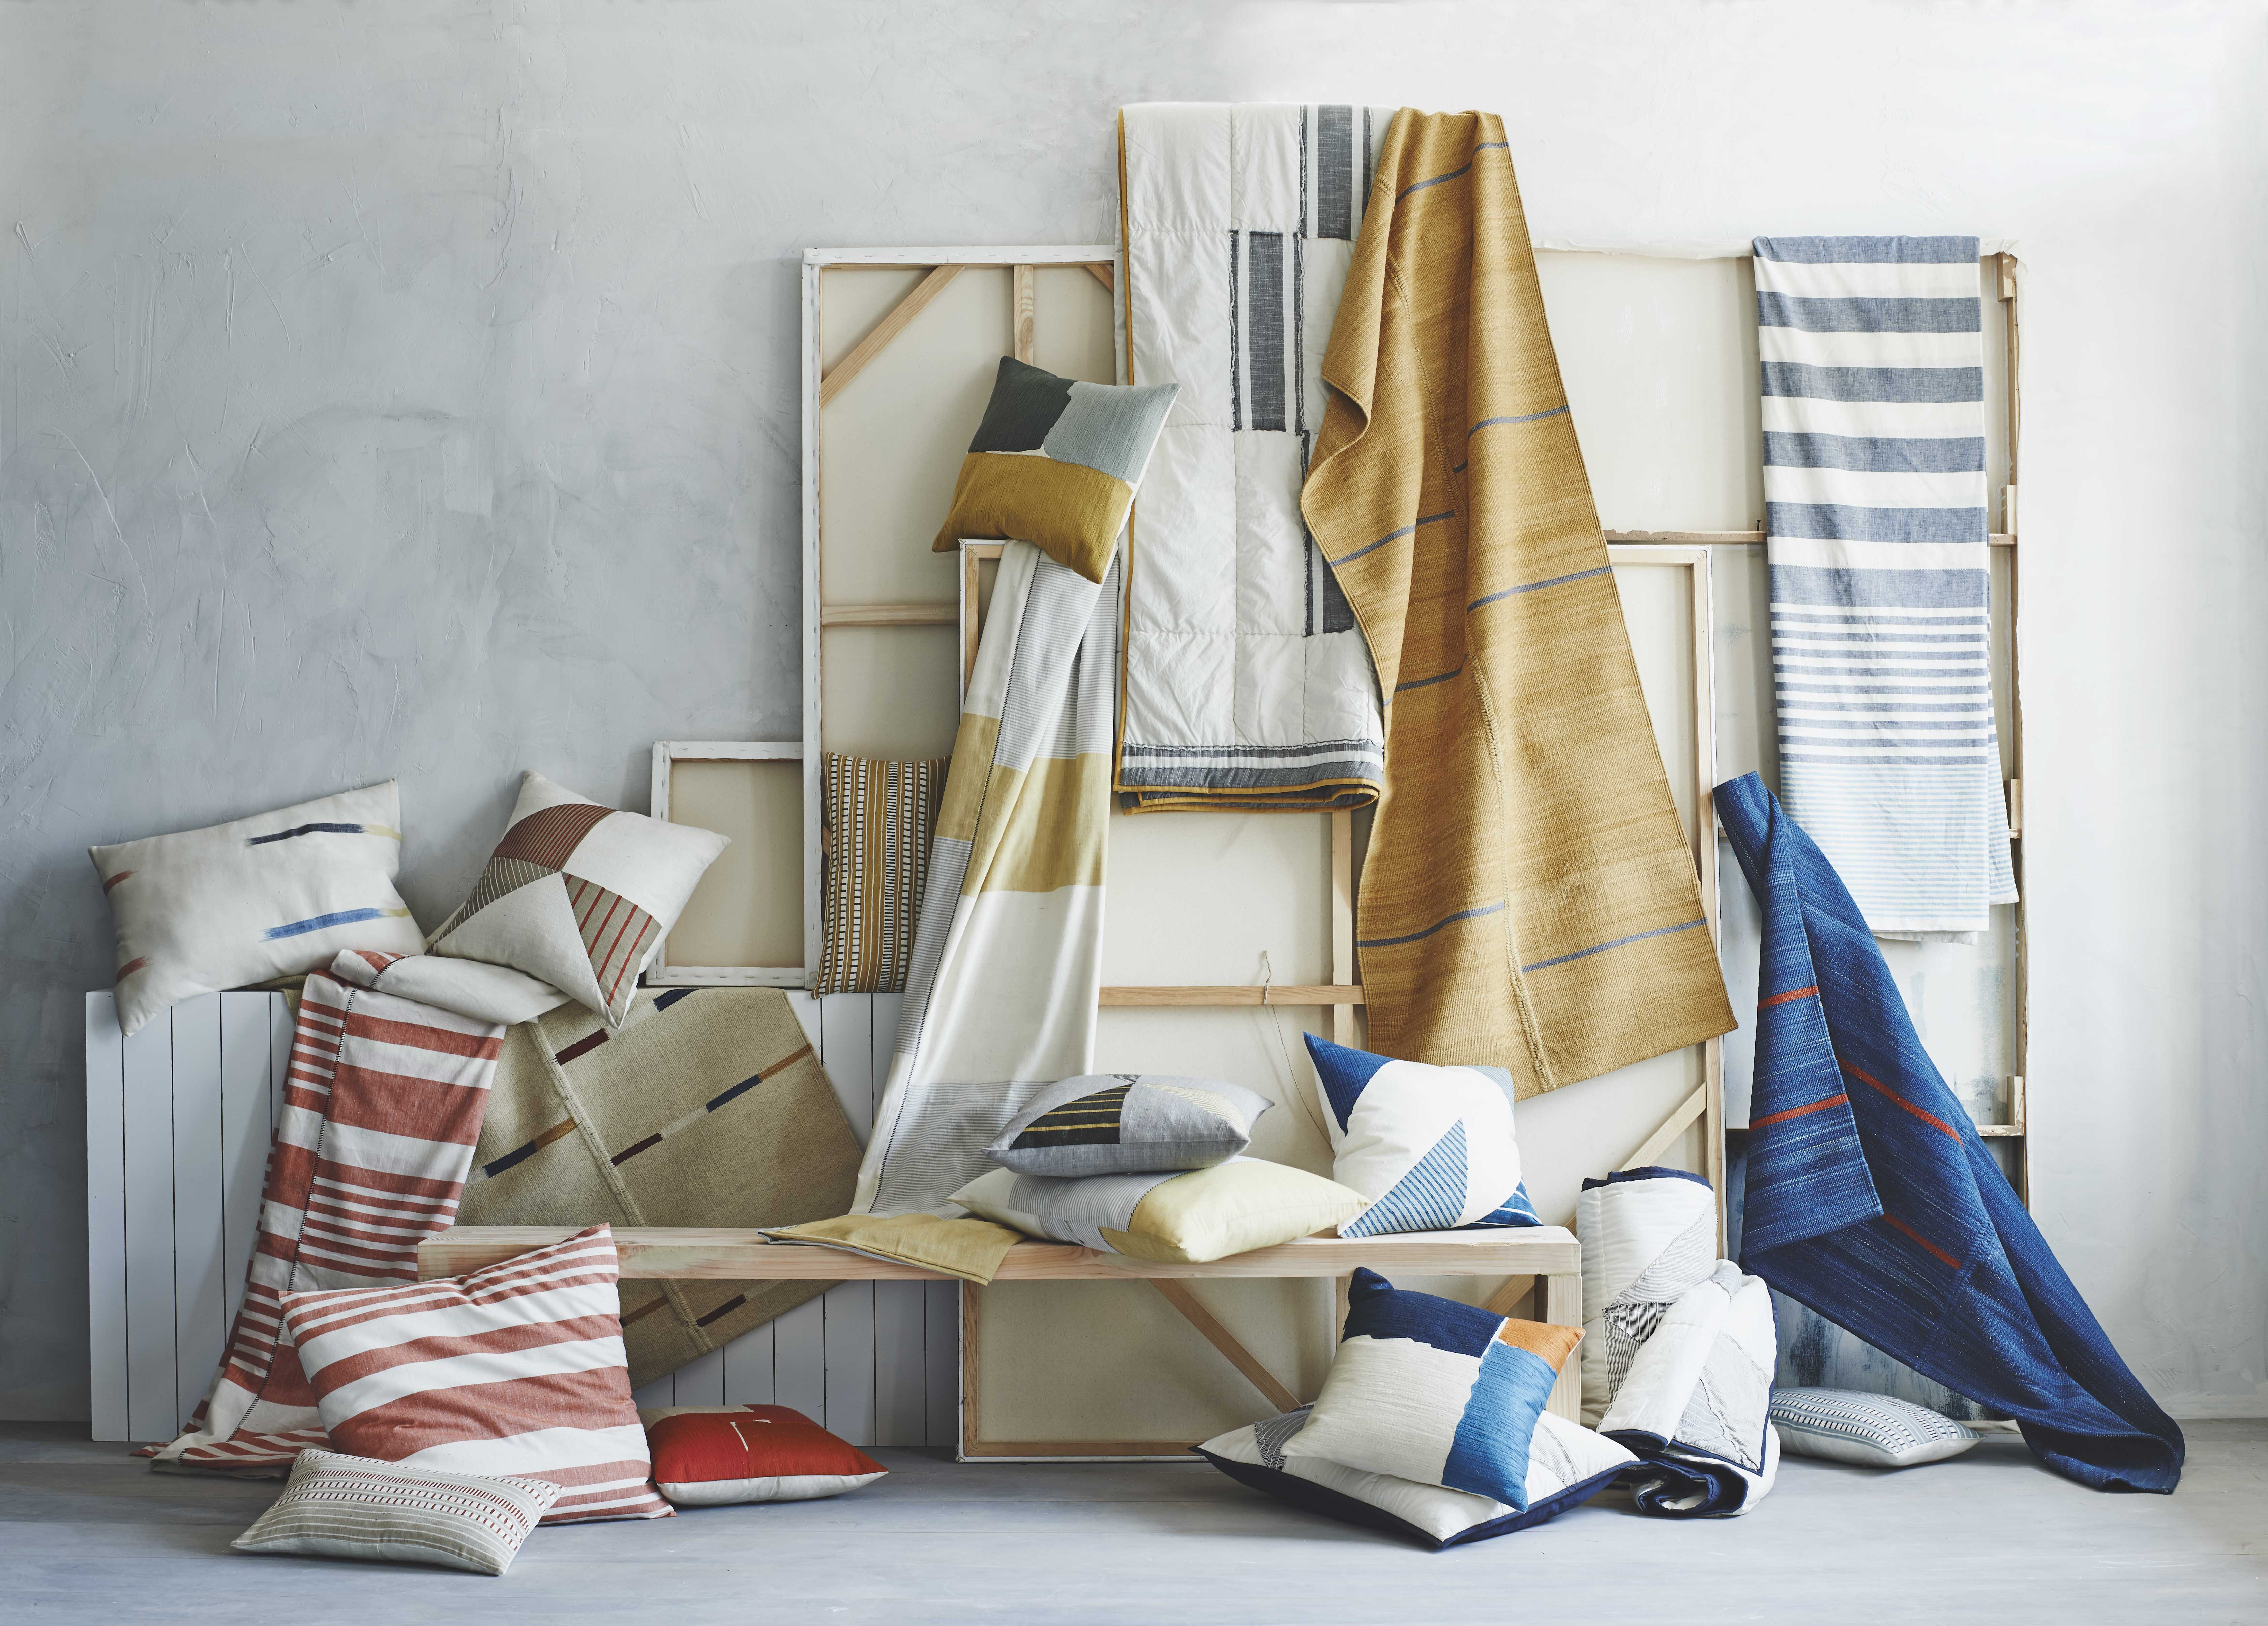 Fashion designer takes a crack at interiors with West Elm